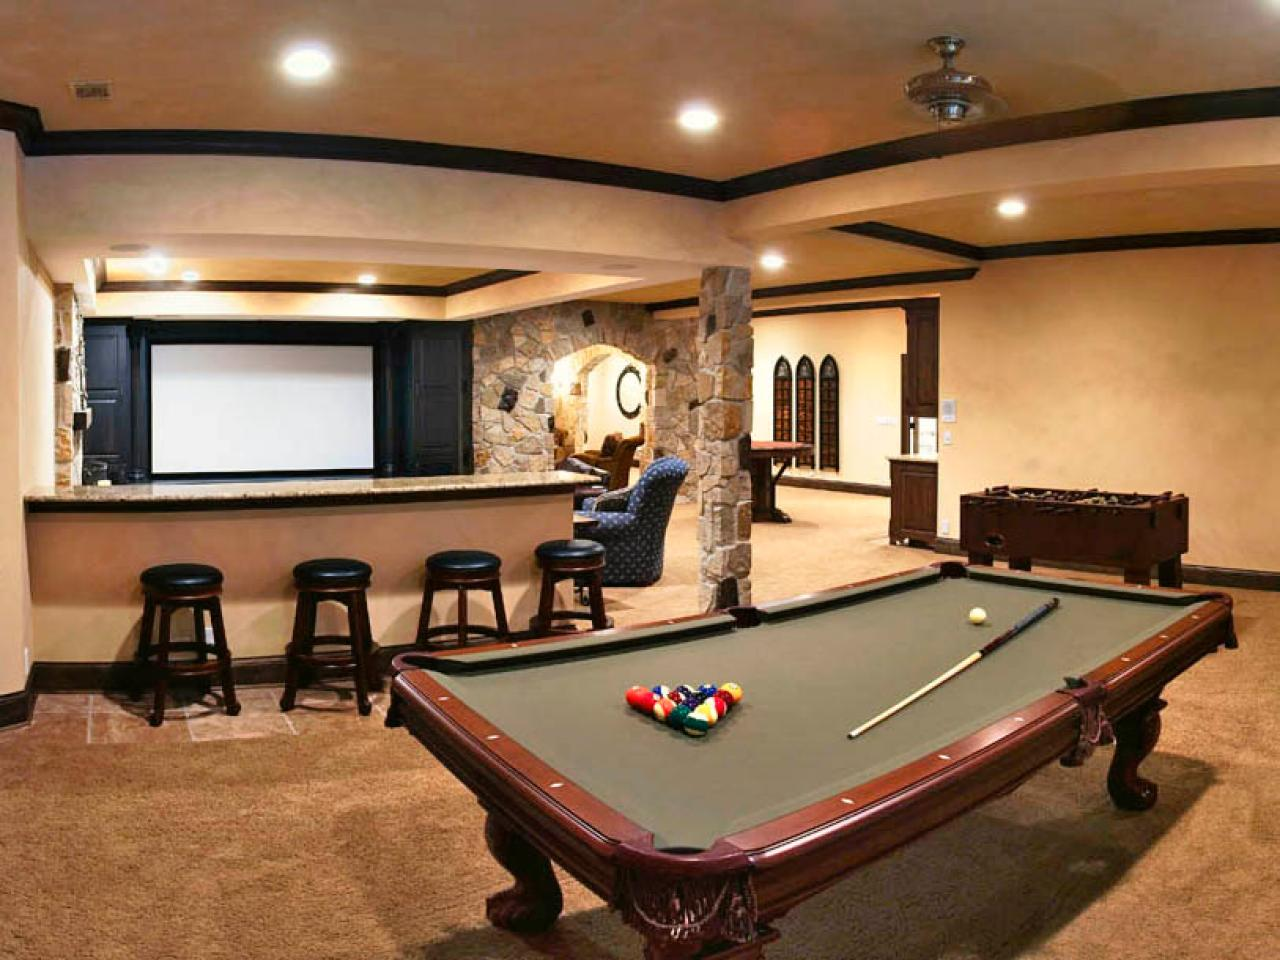 RS_Bryan-Sebring-Basement-Billards-Room_s4x3.jpg.rend.hgtvcom.1280.960.jpeg